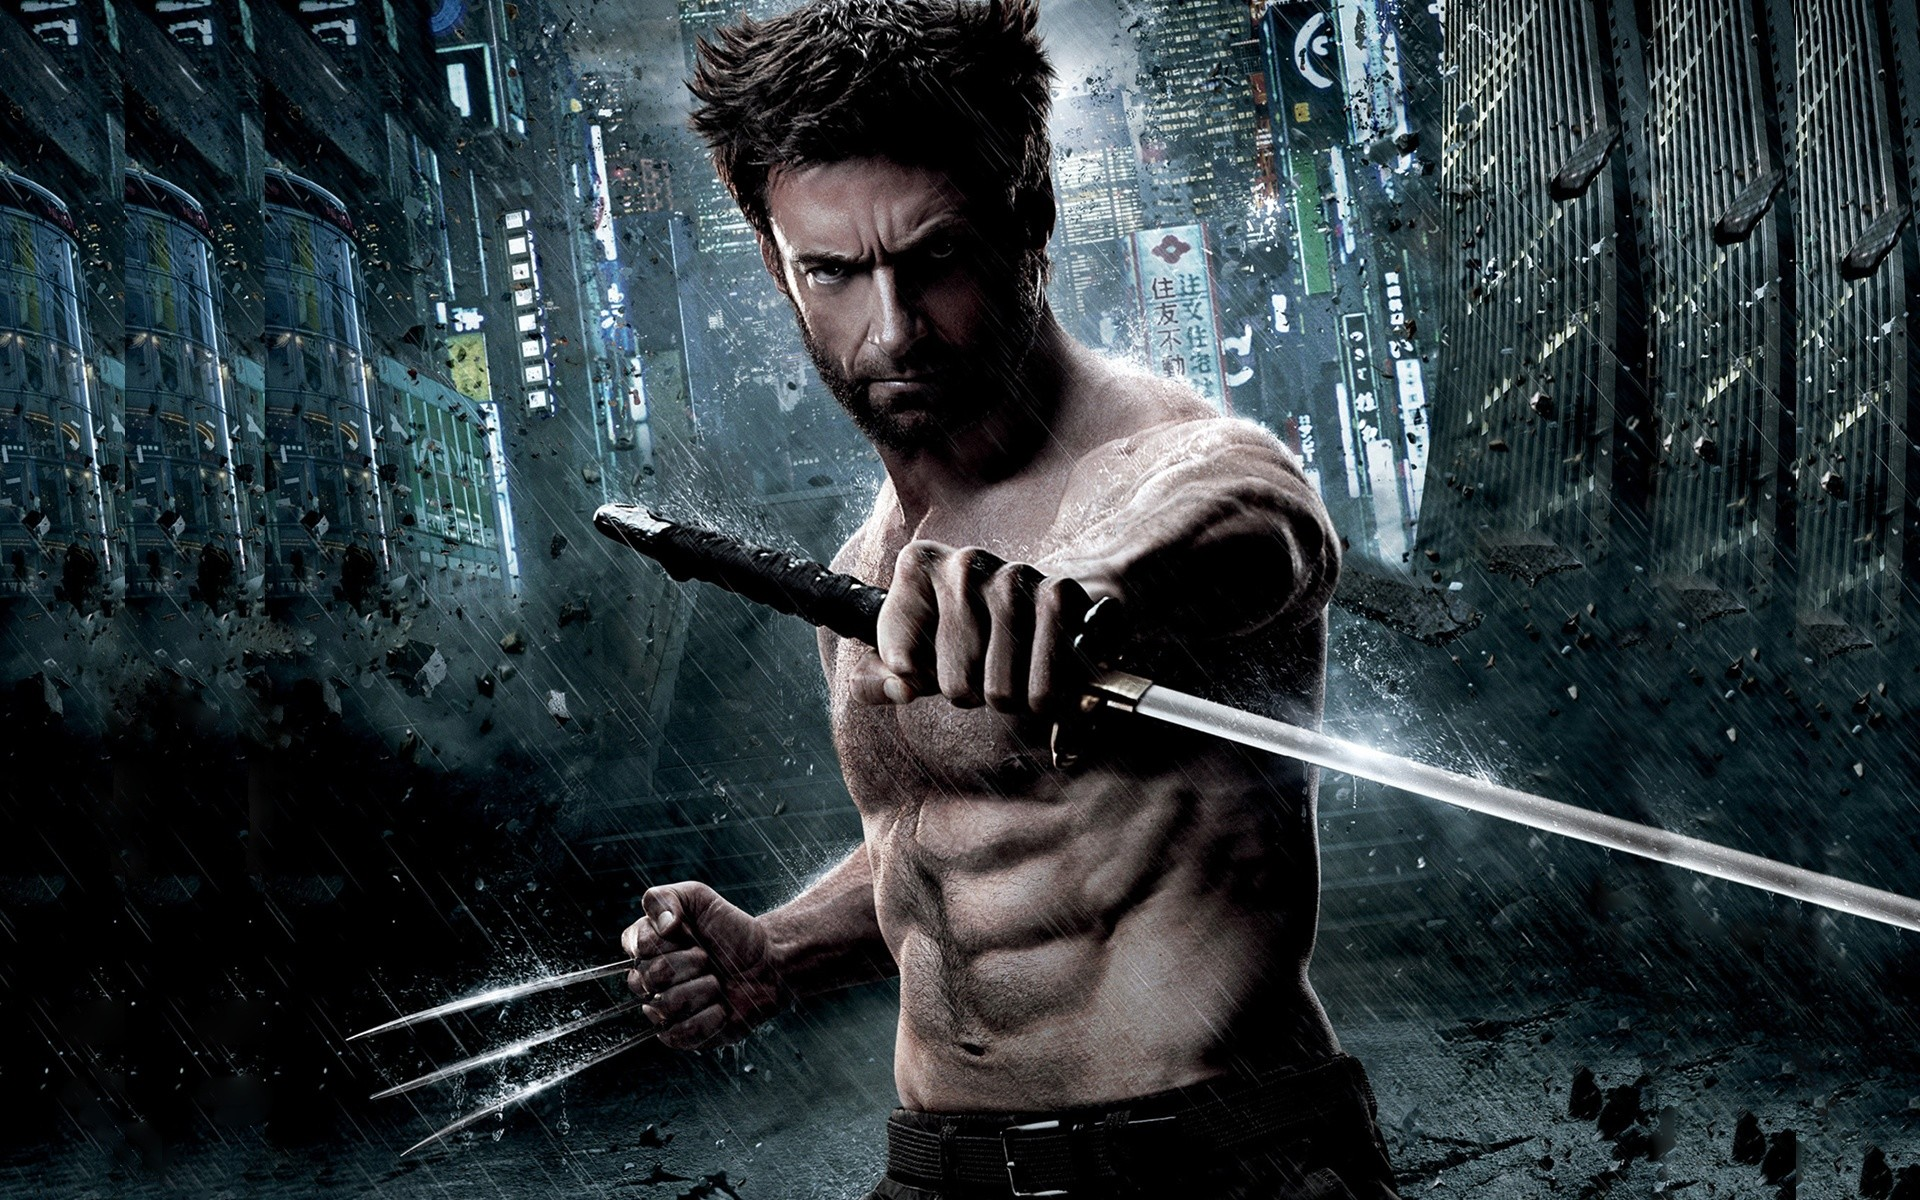 [1920×1080] Wolverine & the X-Men Need #iPhone #6S #Plus #Wallpaper/  #Background for #IPhone6SPlus? Follow iPhone 6S Plus 3Wallpapers/  #Backgrounds…